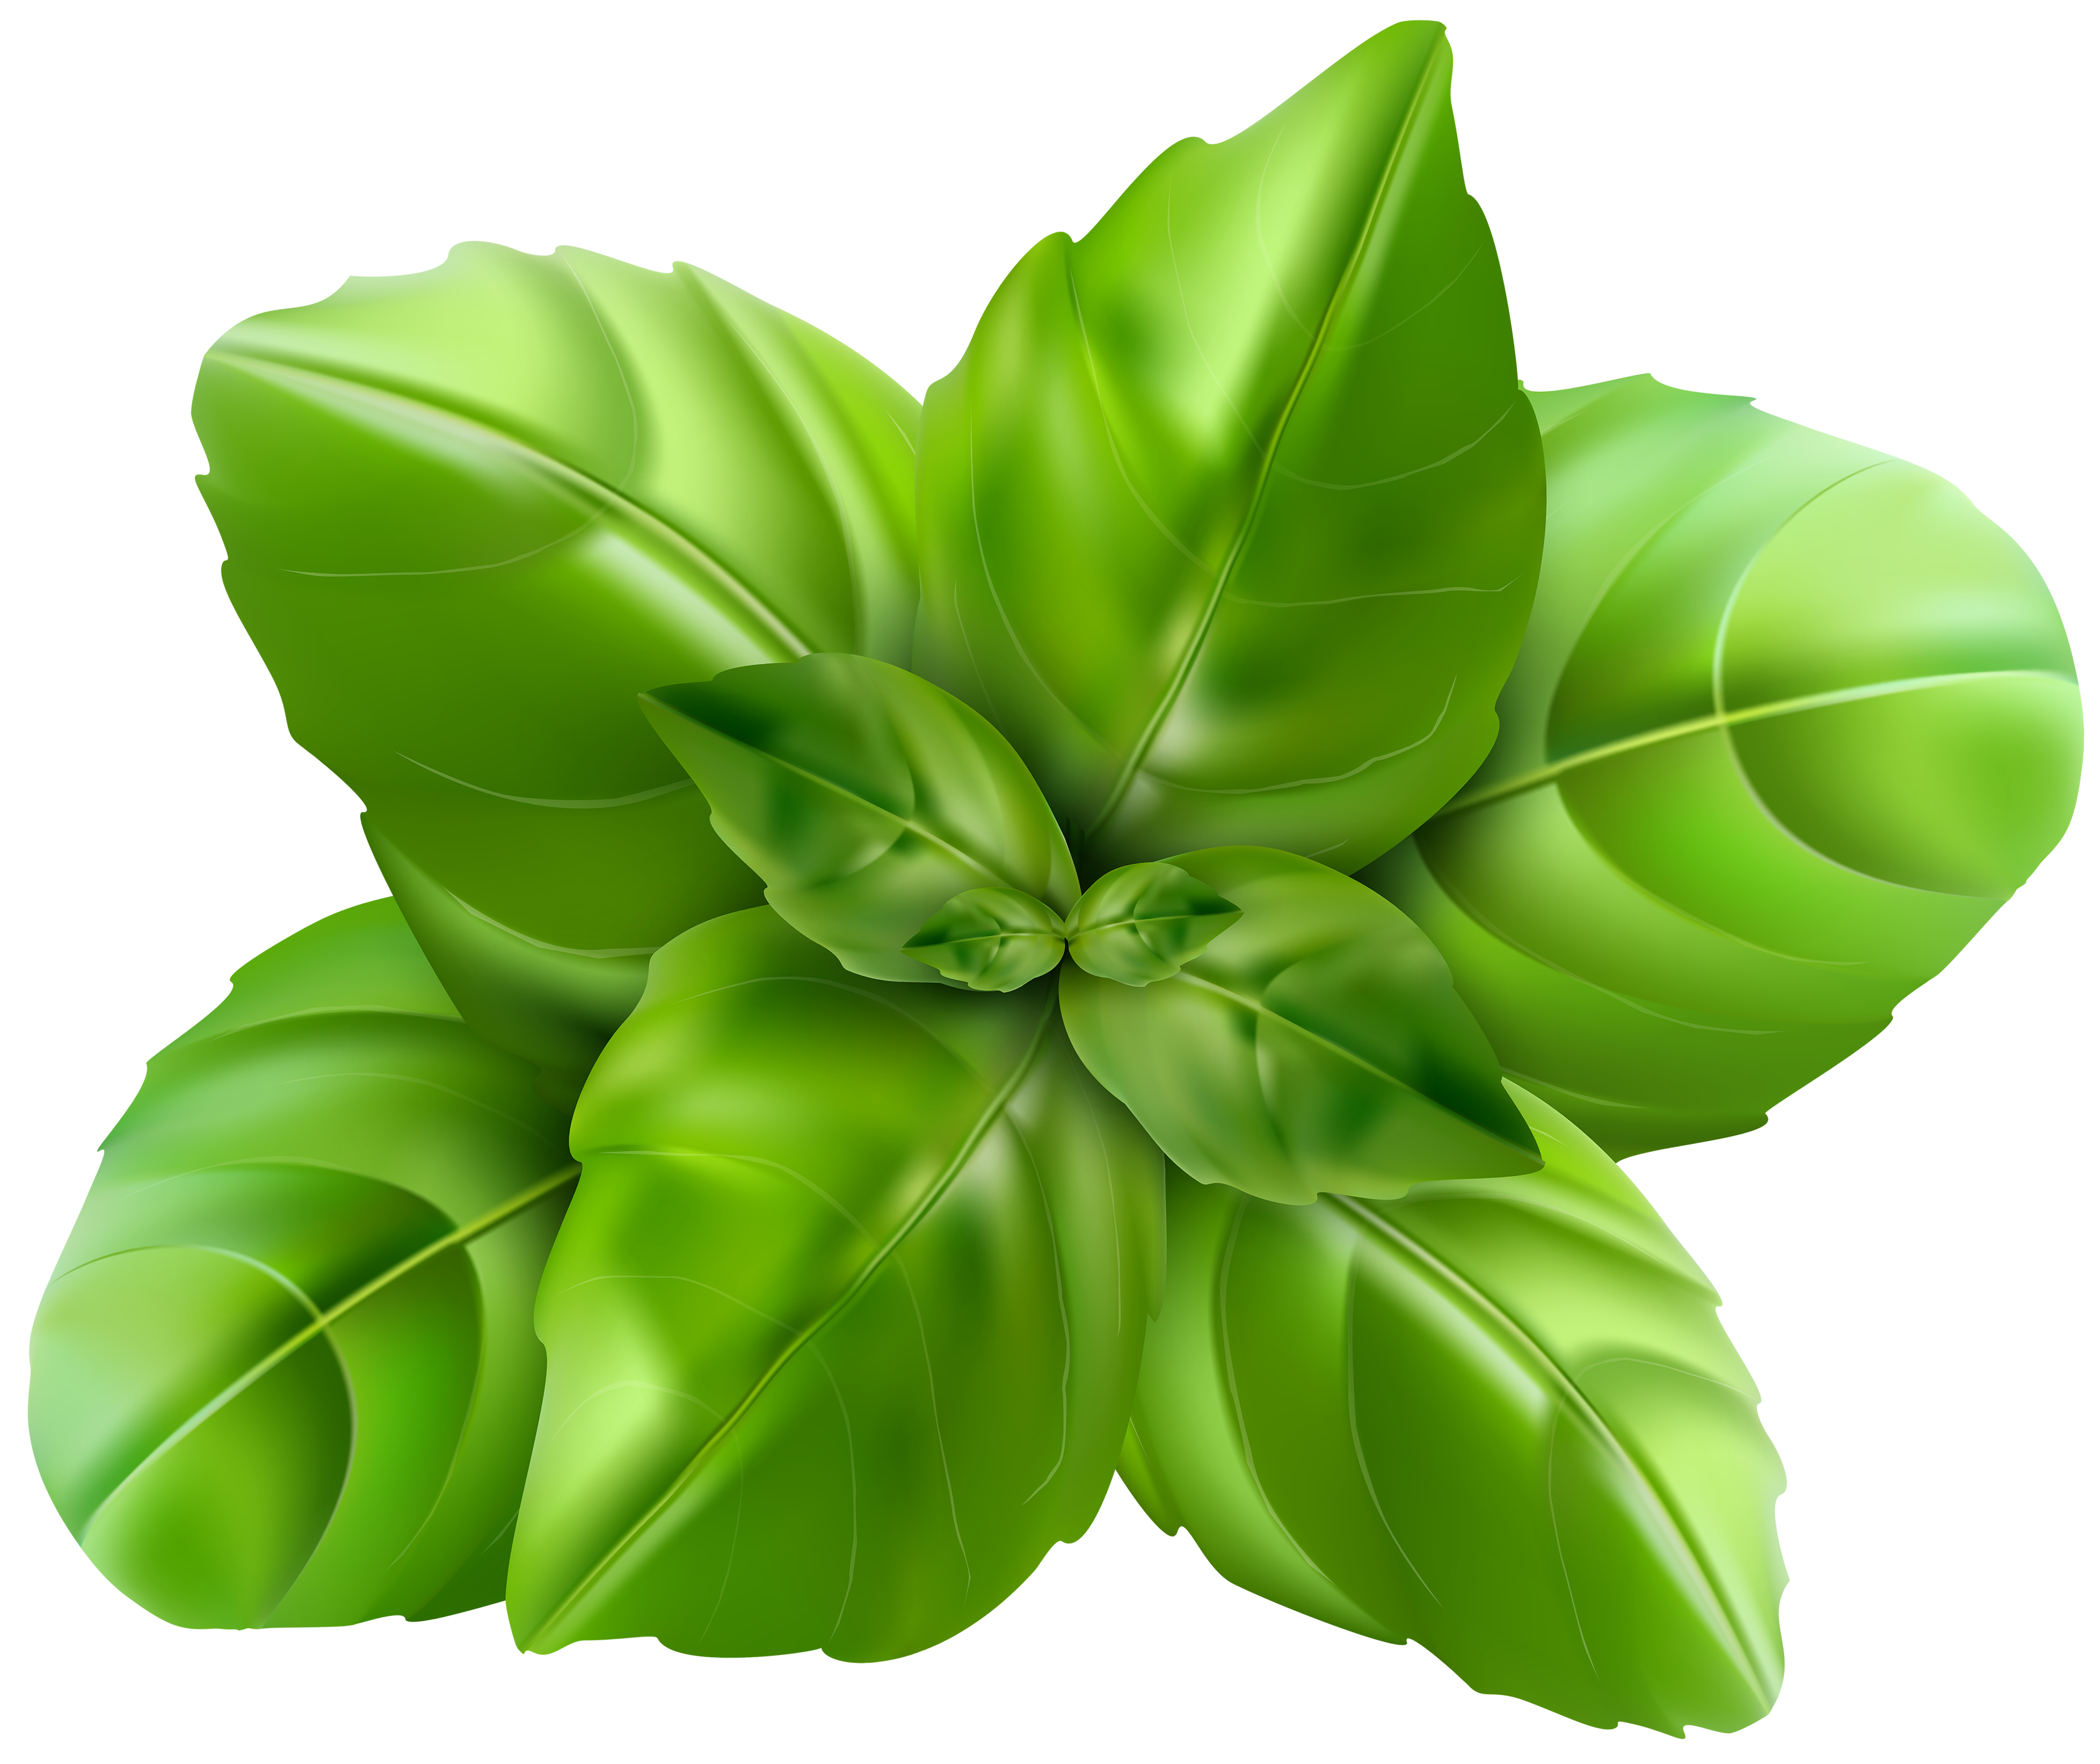 Thai flower clipart graphic library stock Basil PNG Clip Art Image | Gallery Yopriceville - High-Quality ... graphic library stock